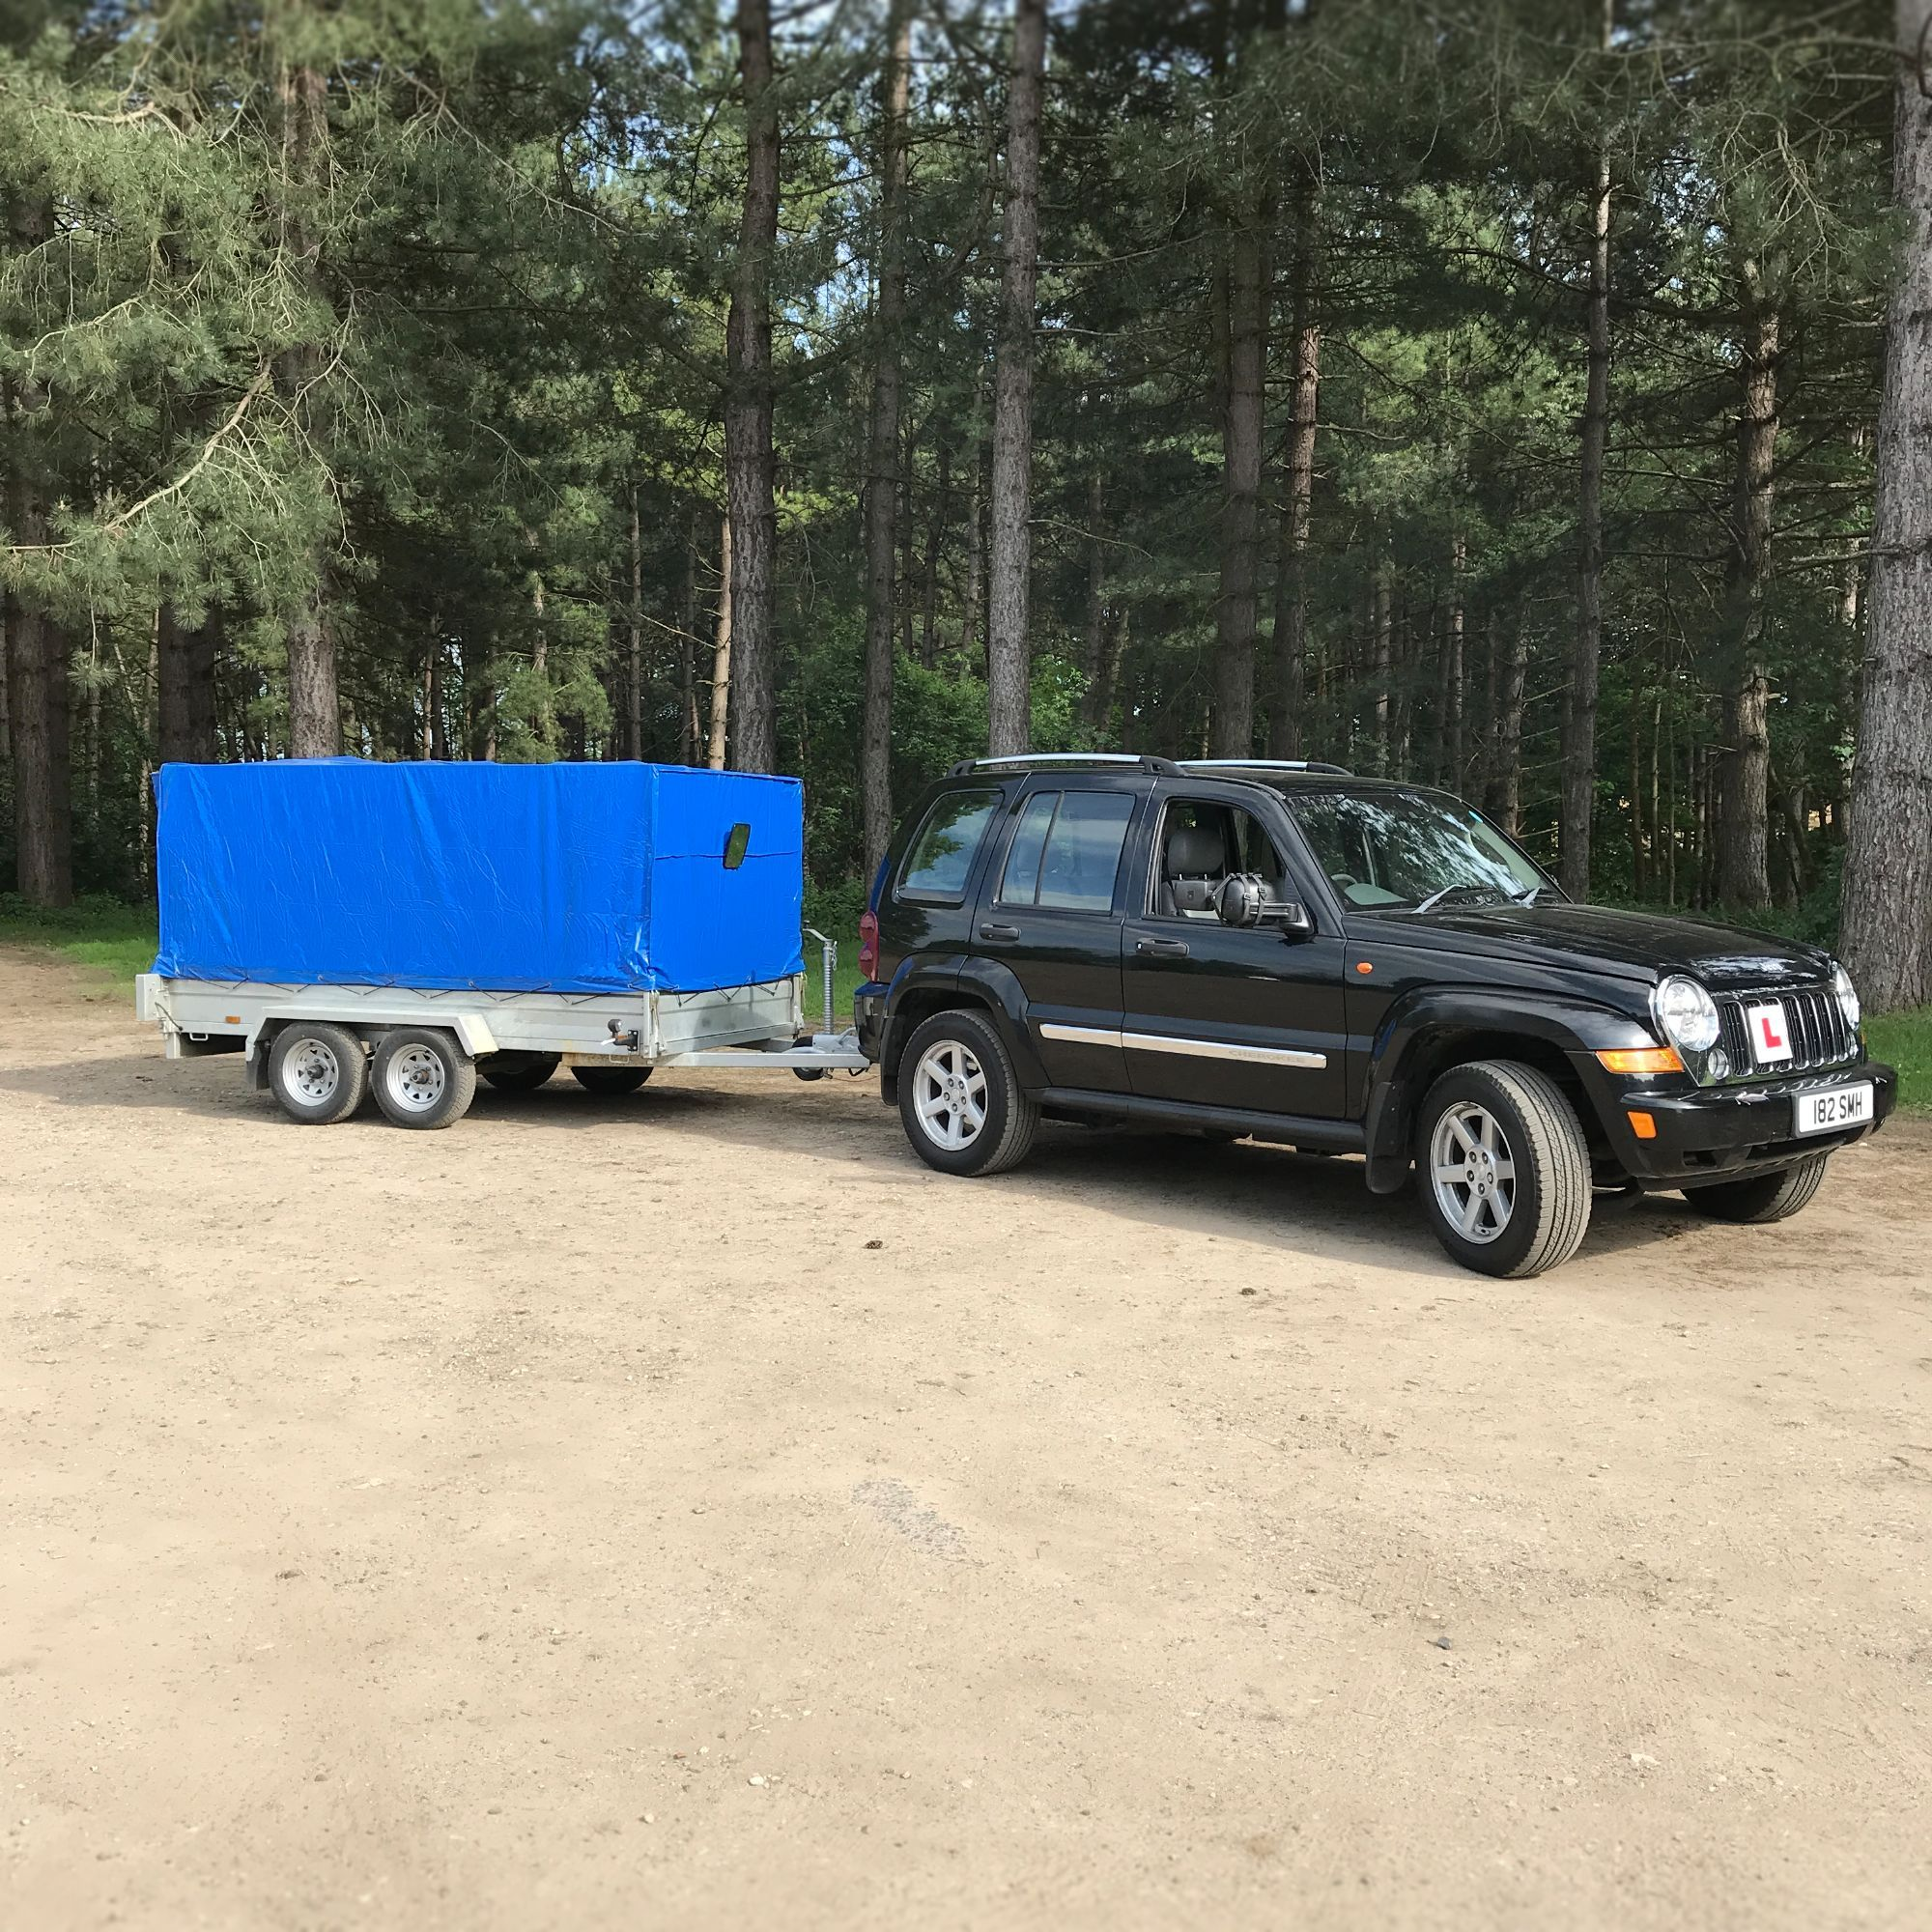 B+E licence towing course vehicle hire in Kent